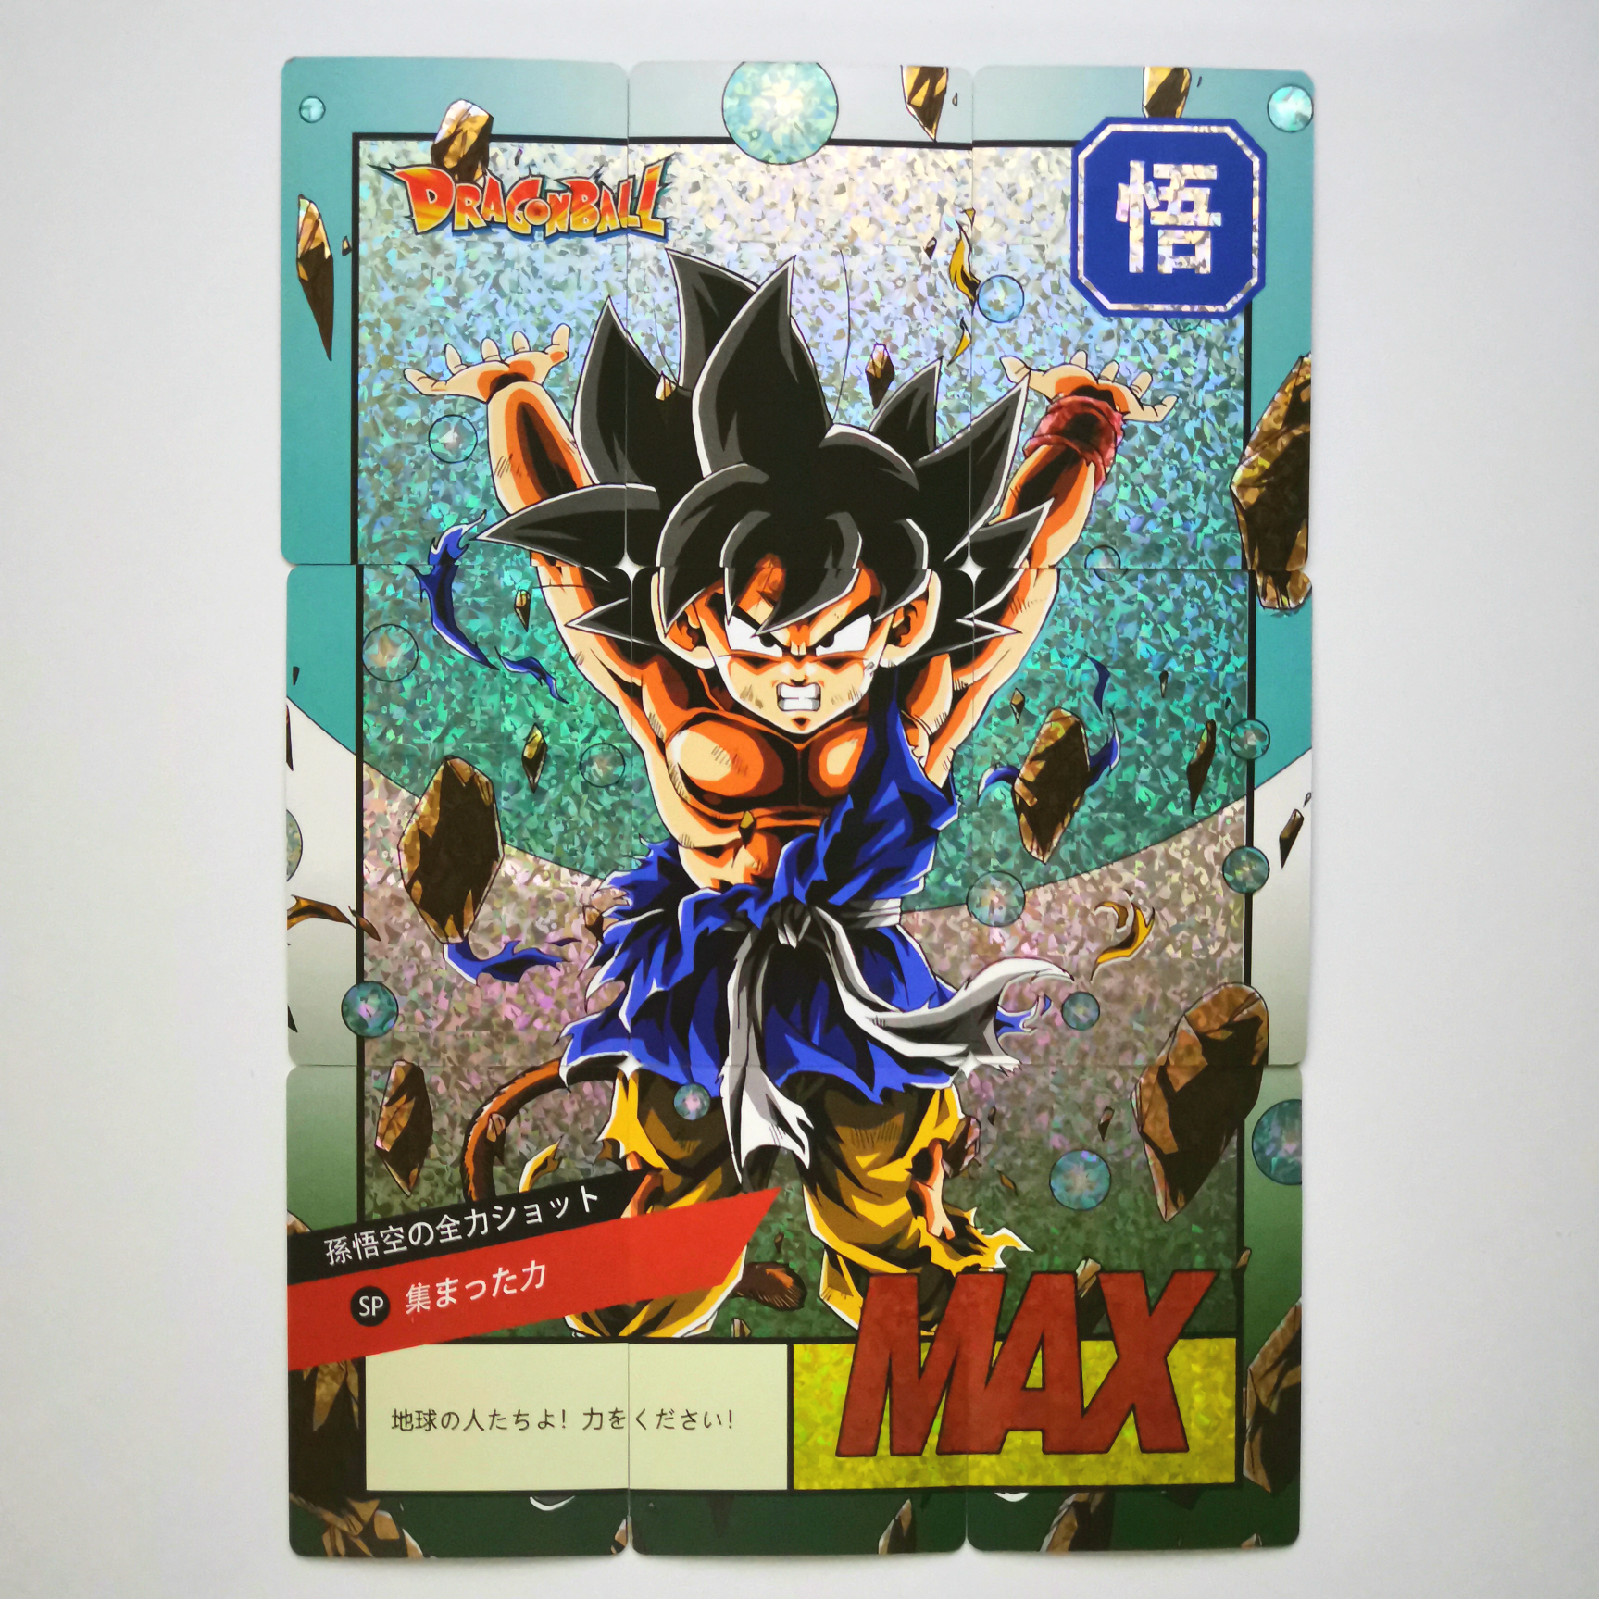 27pcs/set 9 In 1Super Dragon Ball Z Genki DamaSpirit Bomb Heroes Battle Card Goku Black Vegeta Super Game Collection Cards